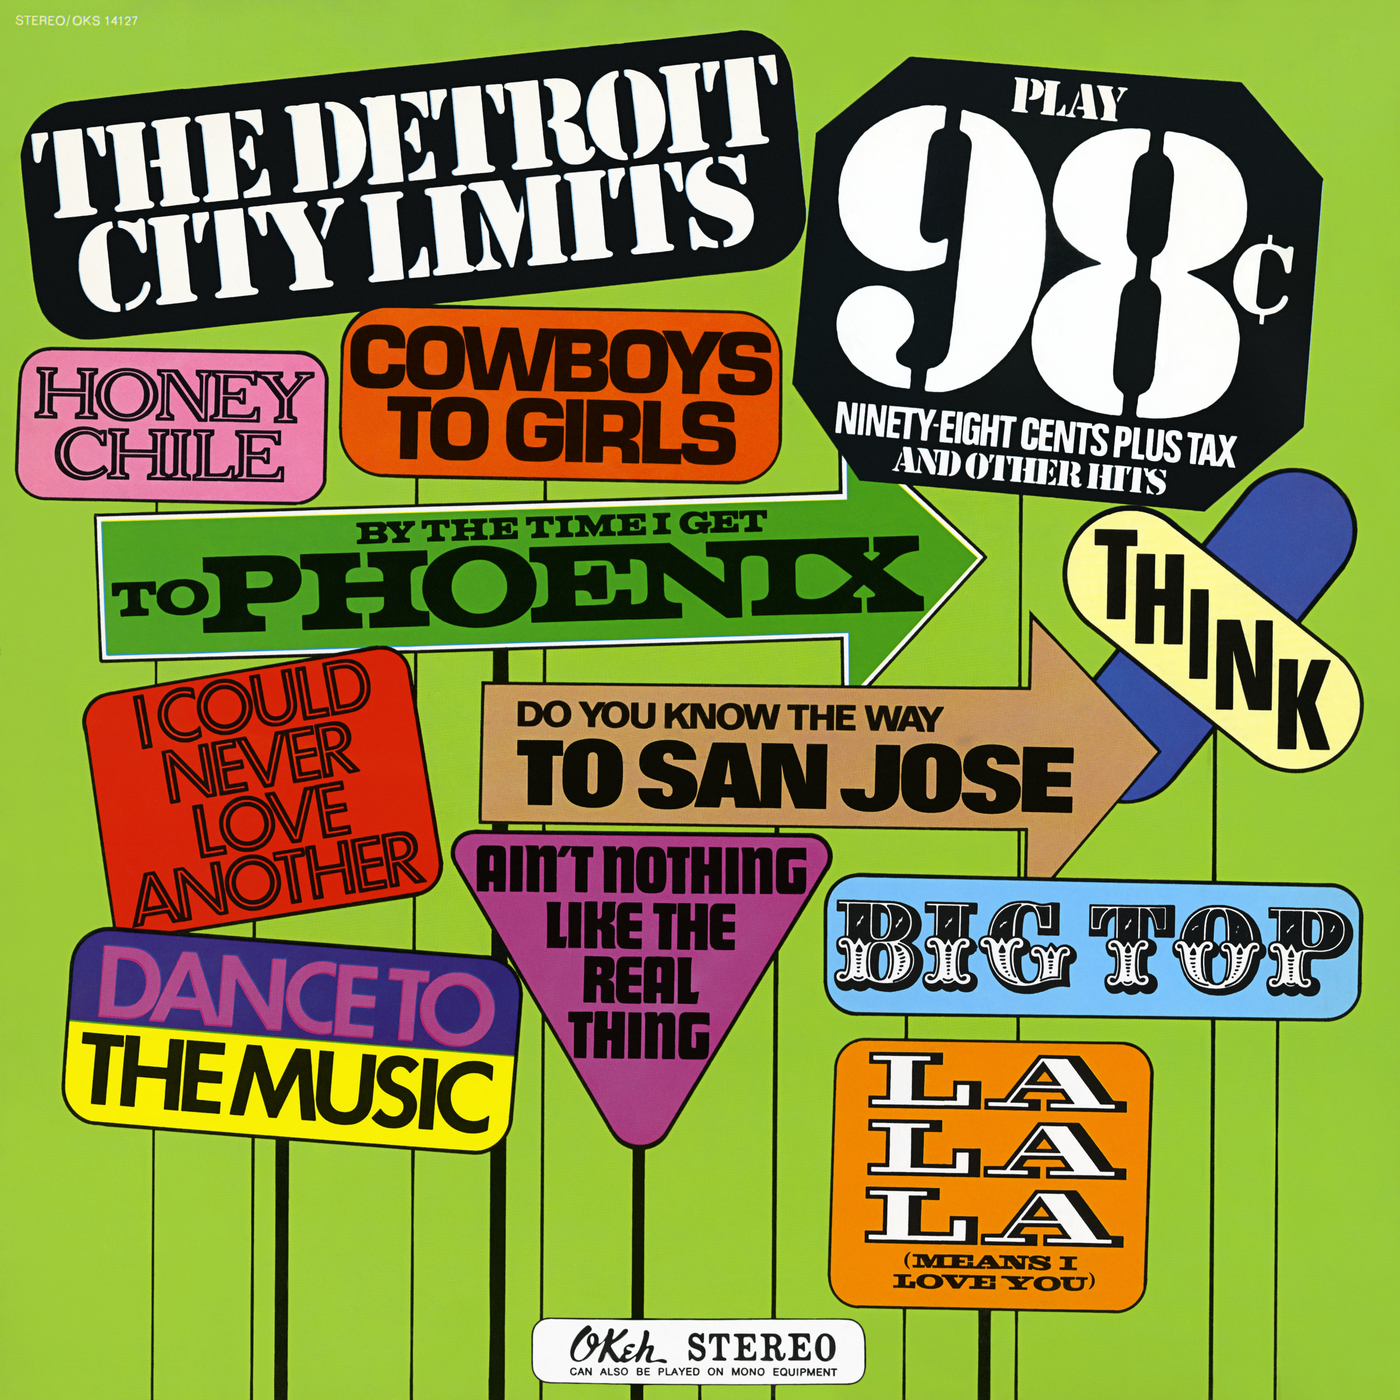 98c Ninety-Eight Cents Plus Tax and Other Great Hits - The Detroit City Limits